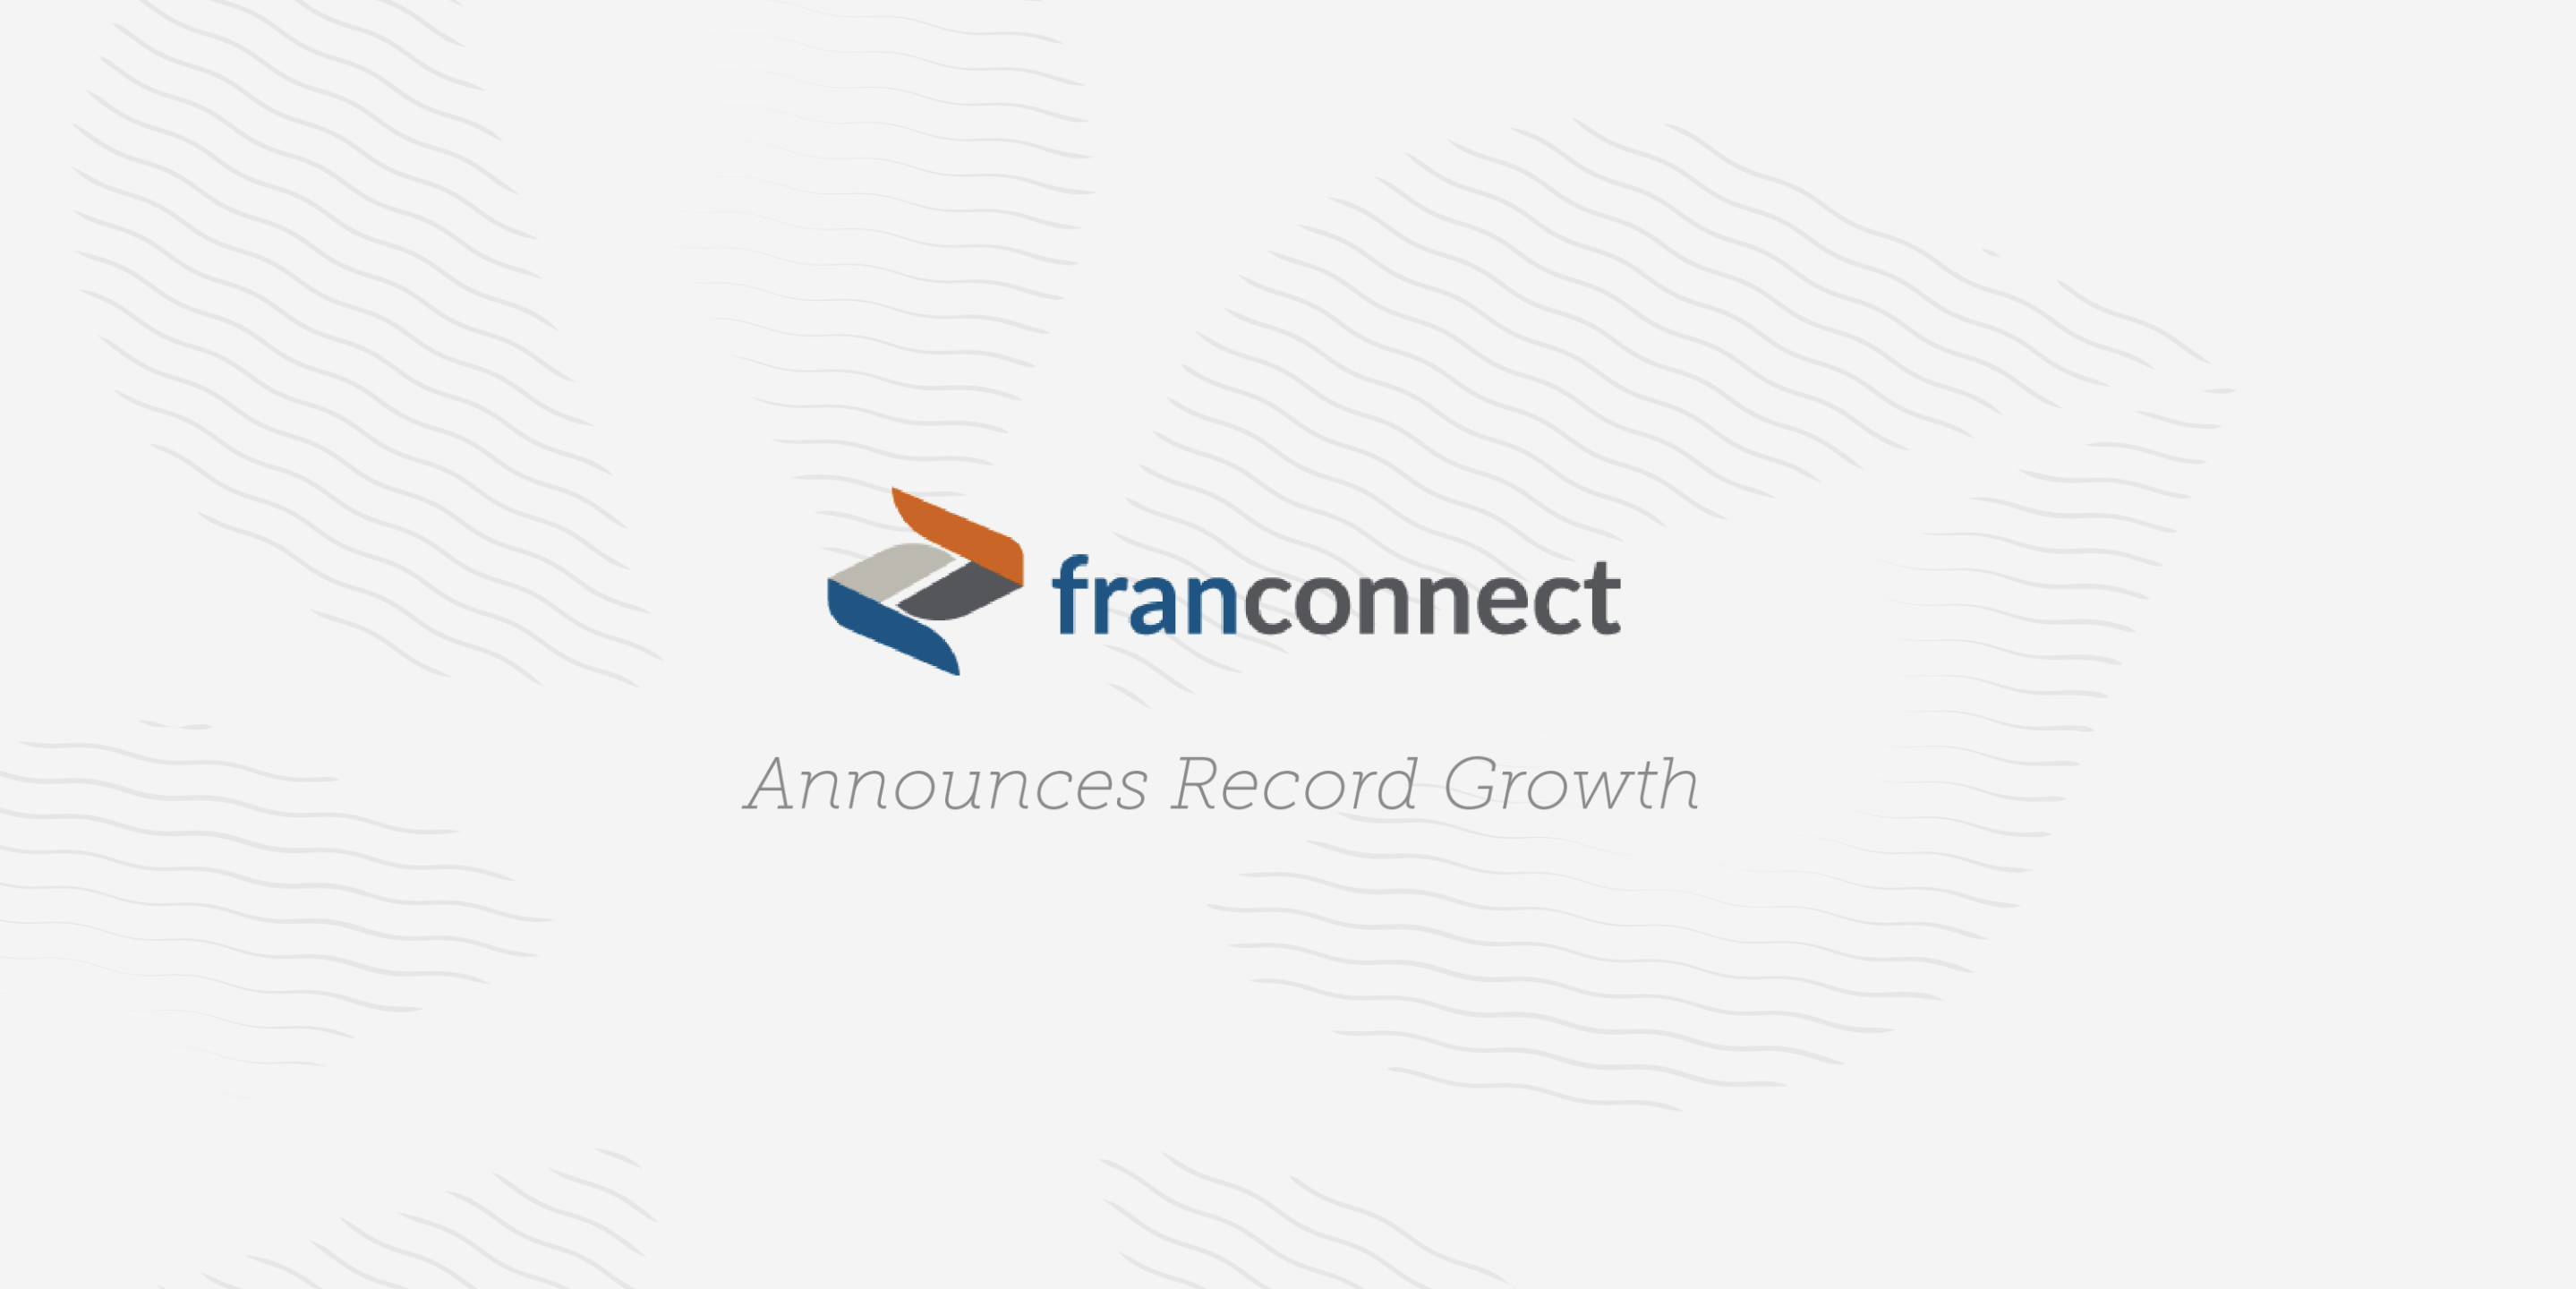 FranConnect, a Serent Portfolio Company, Reports Record Growth